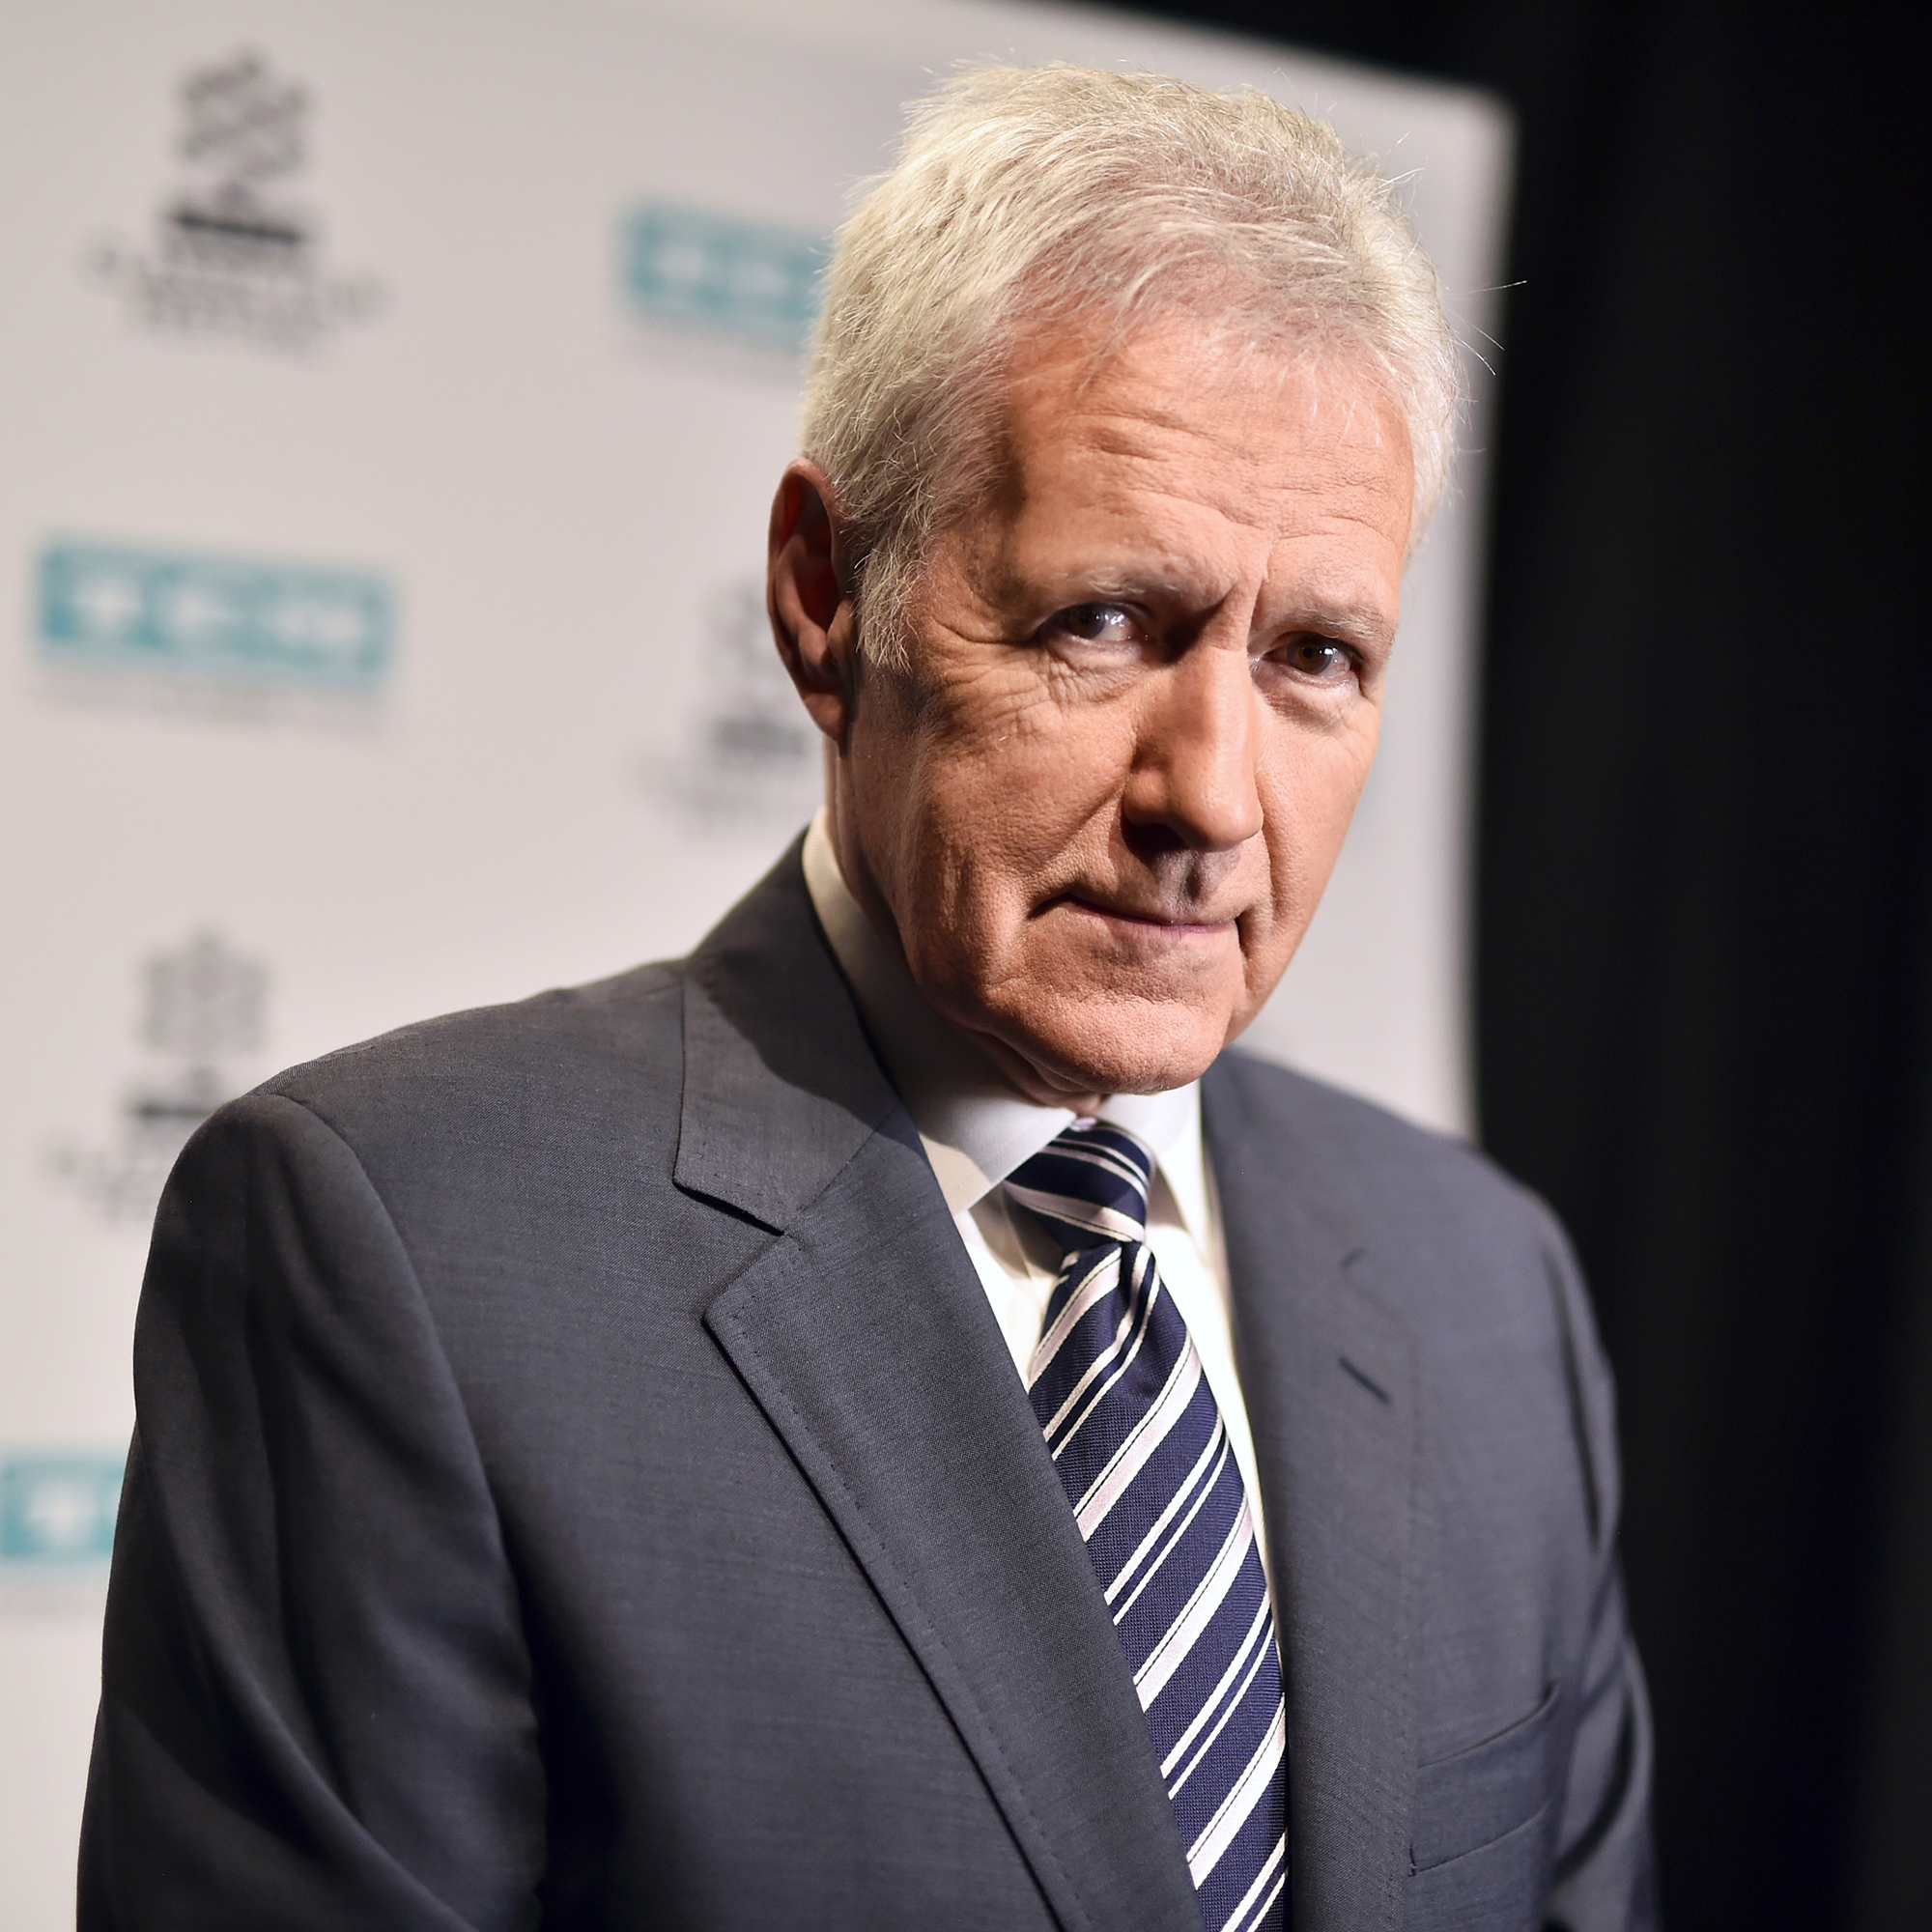 Heart Attack Survivors - The Jeopardy! host has survived two minor heart attacks, his first in December 2007 at age 67. In June 2012, he nearly ignored a squeezing pain after a DIY home improvement project but took aspirin, then went to the hospital at his wife's insistence.